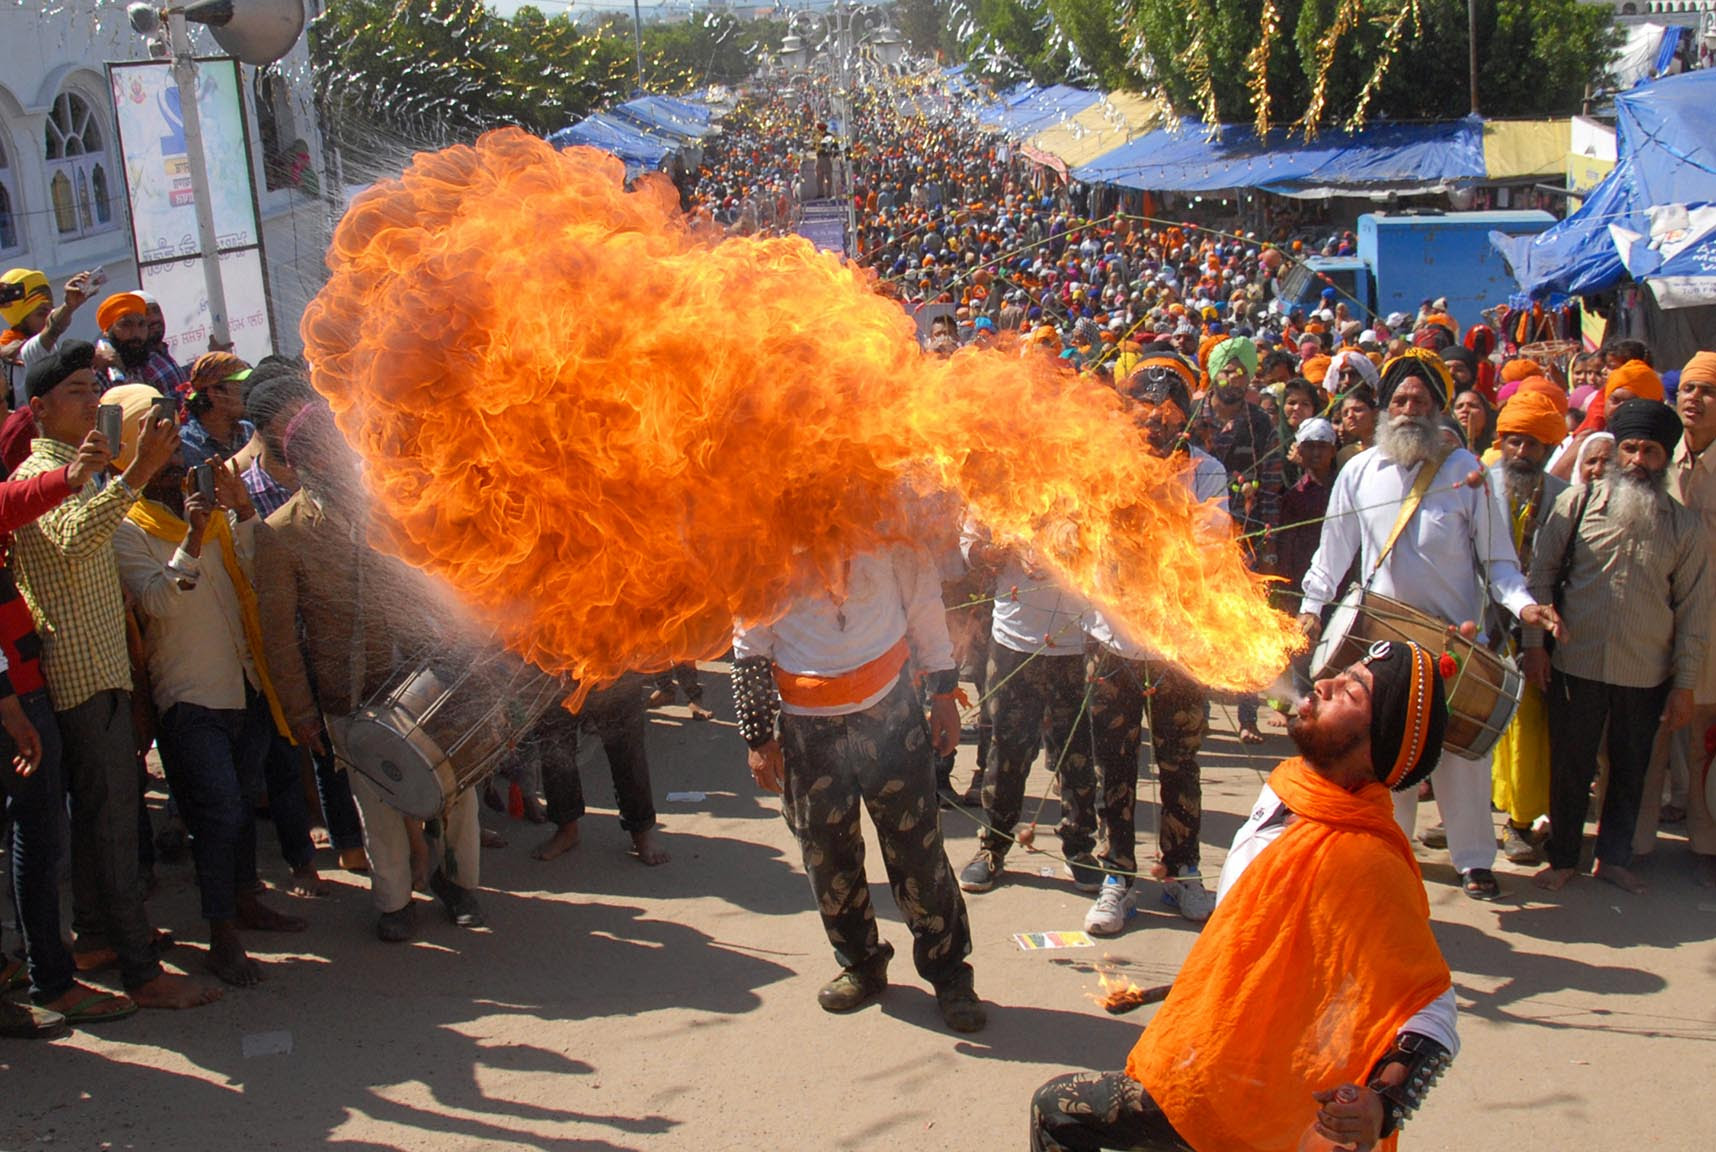 An Indian Sikh performs fire-breathing